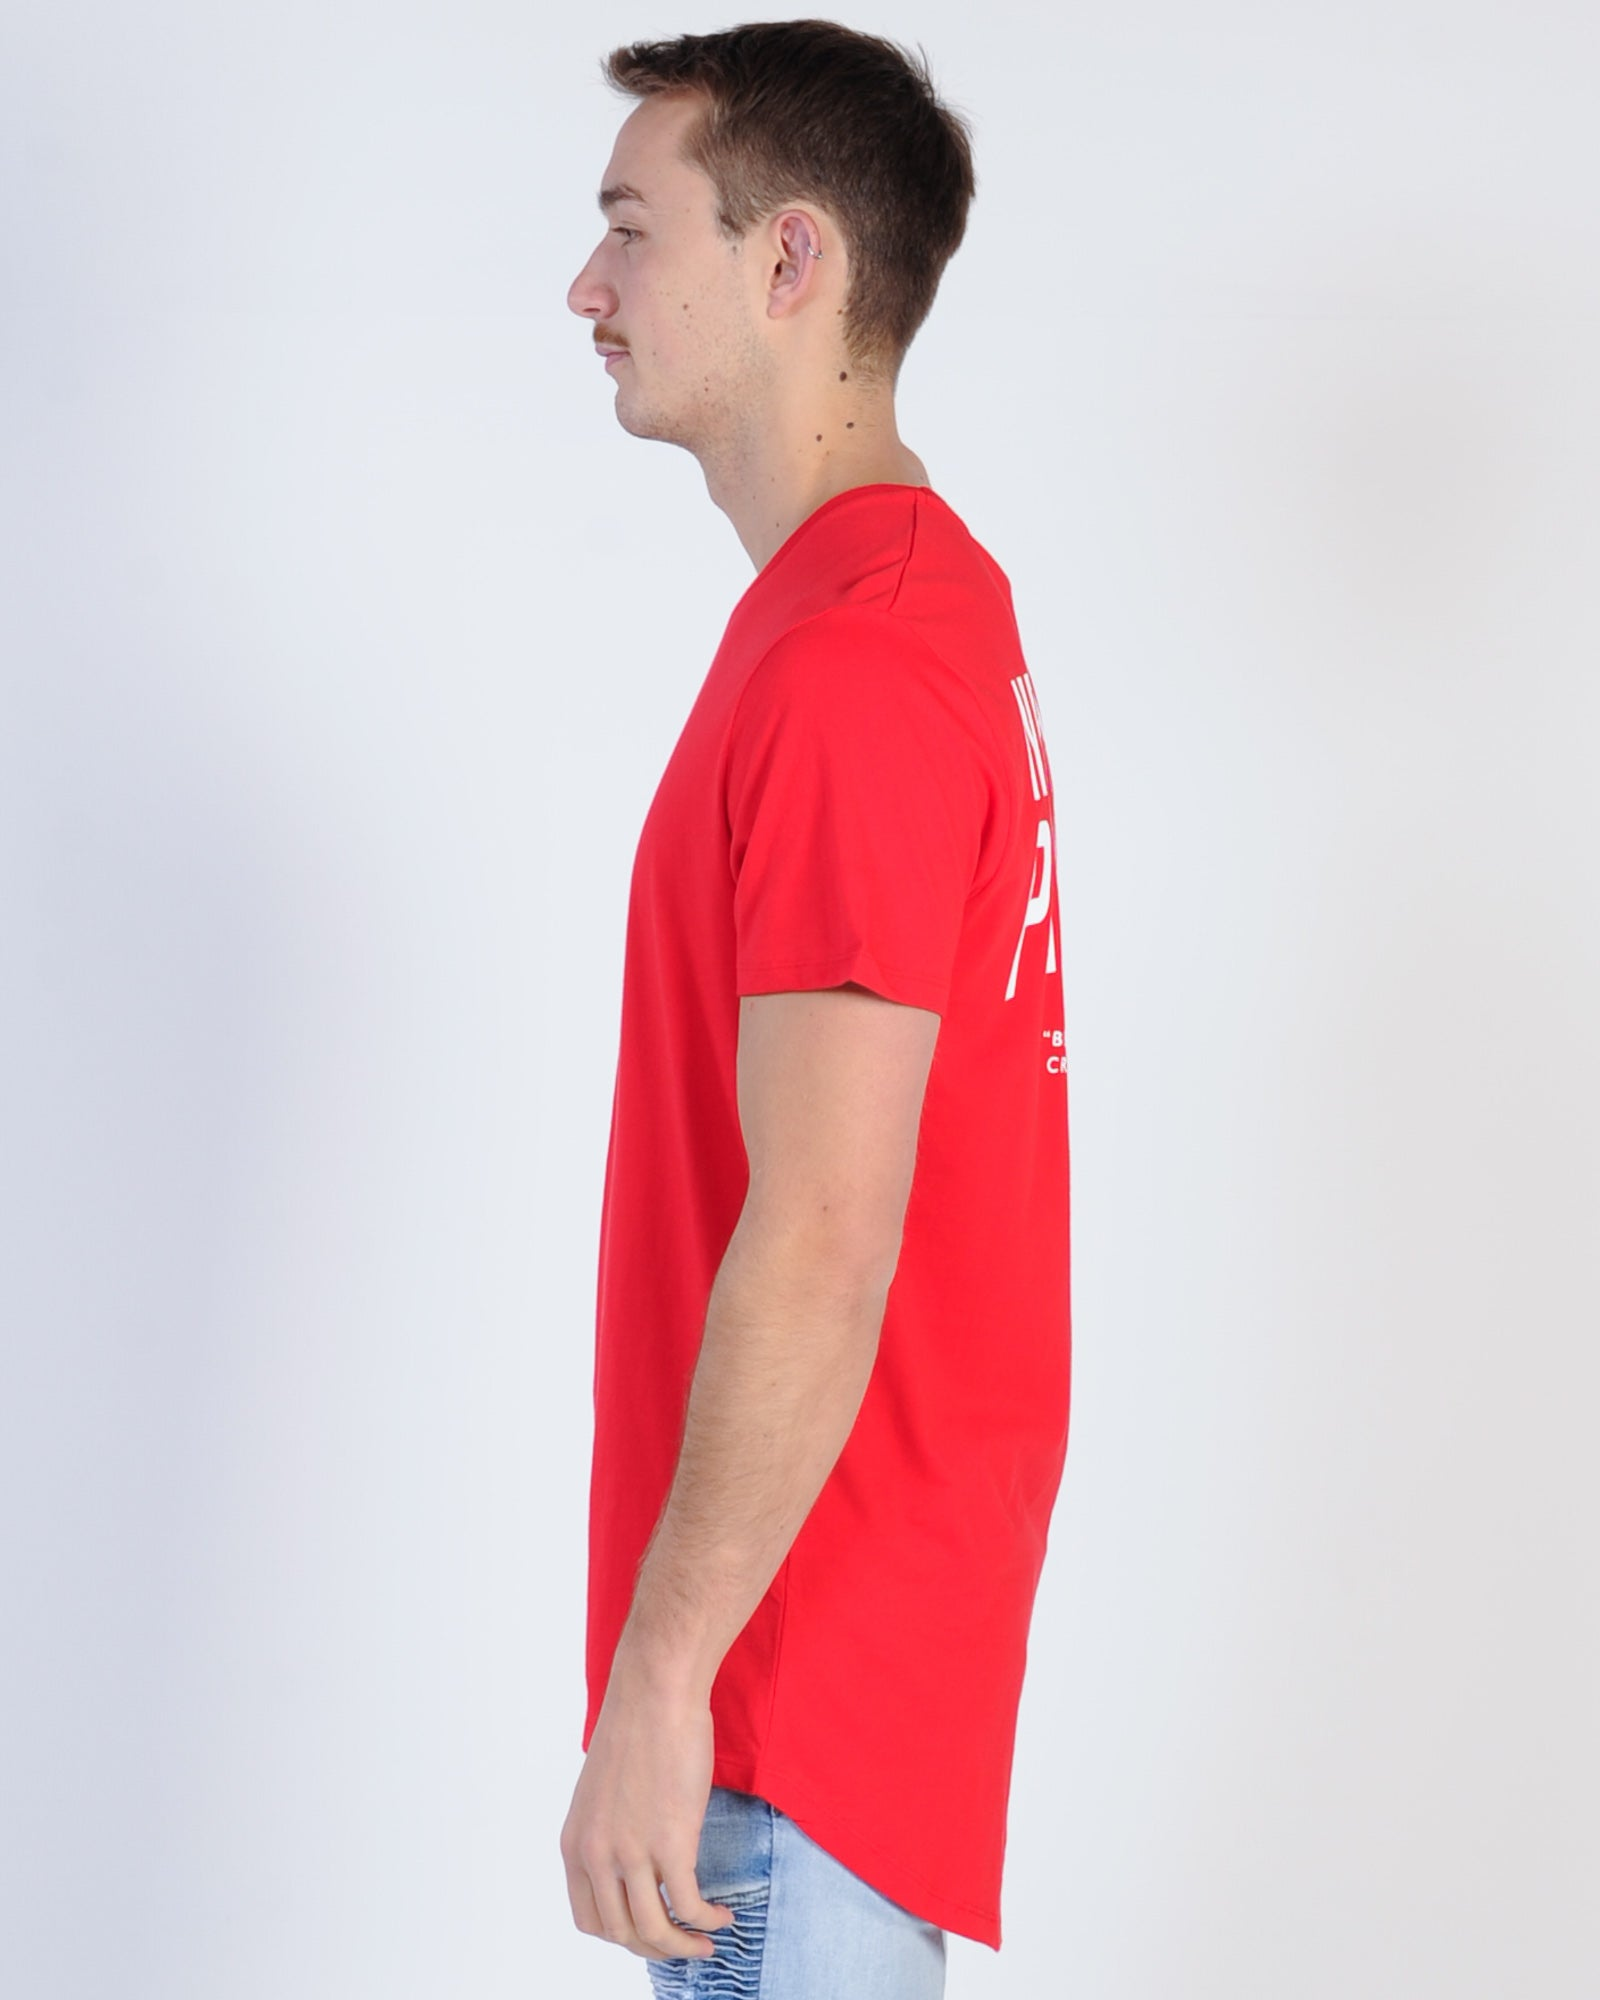 Nena & Pasadena Richardson Tee - Red